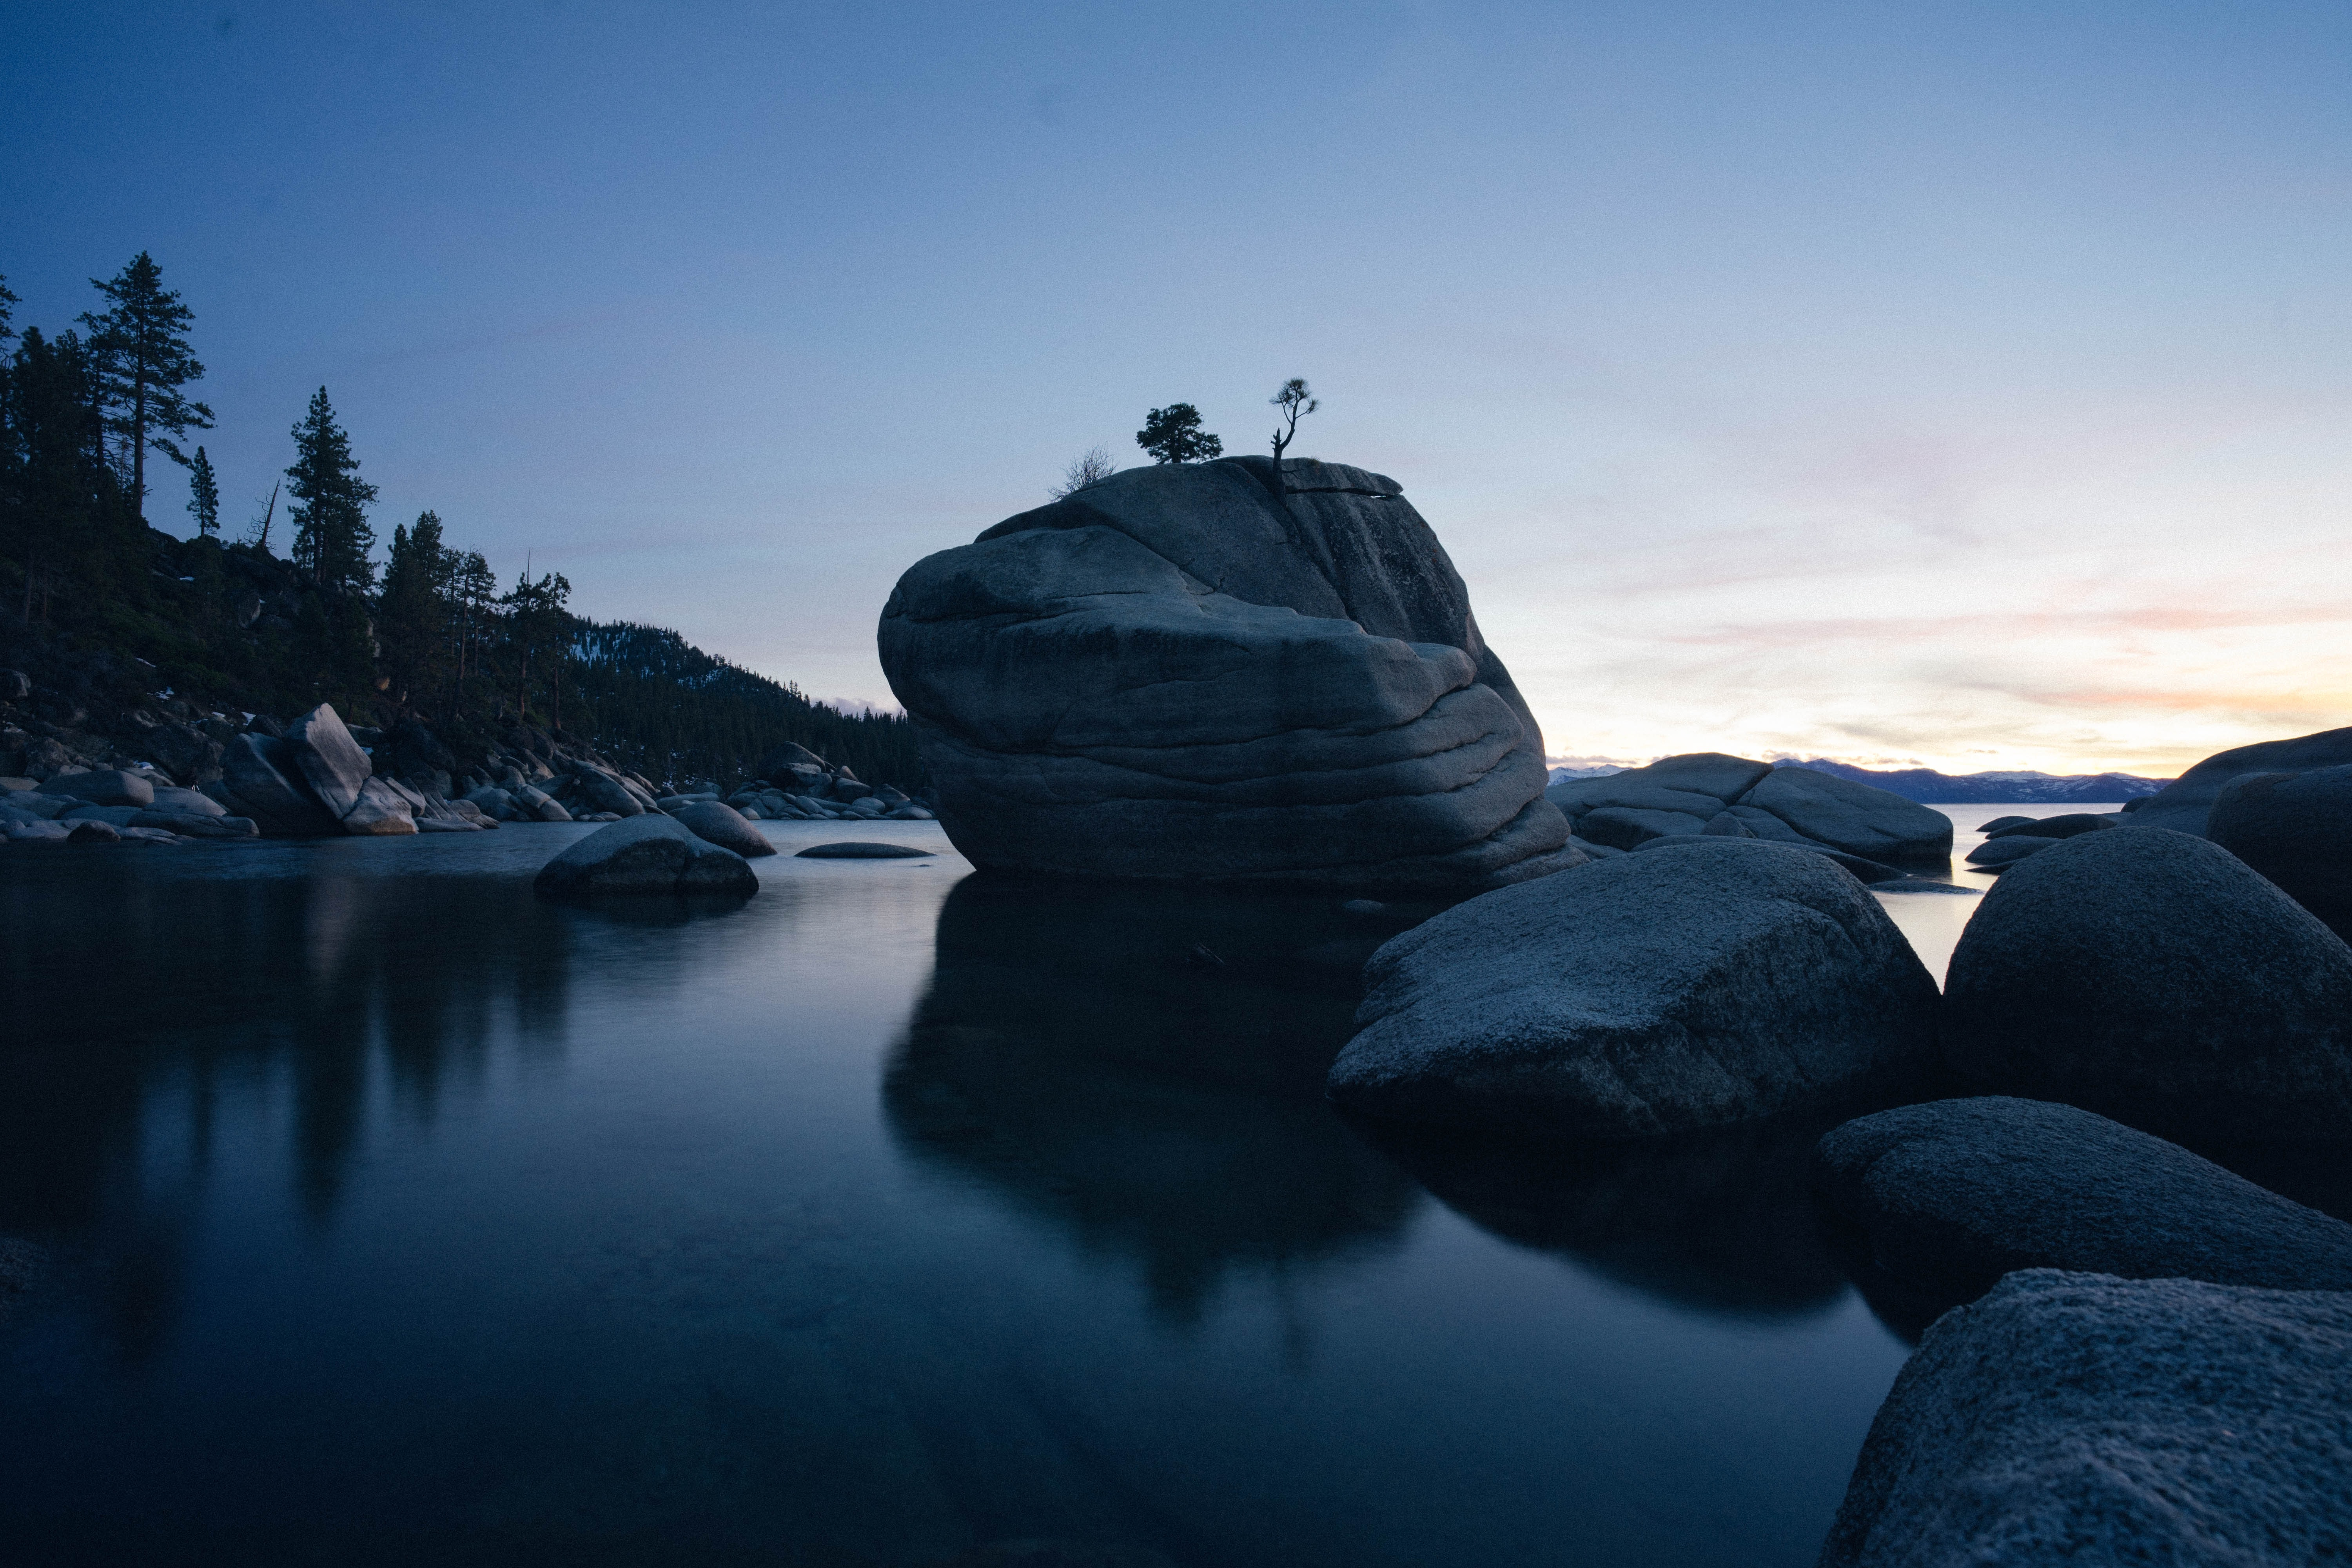 rock formation on body of water at sunset